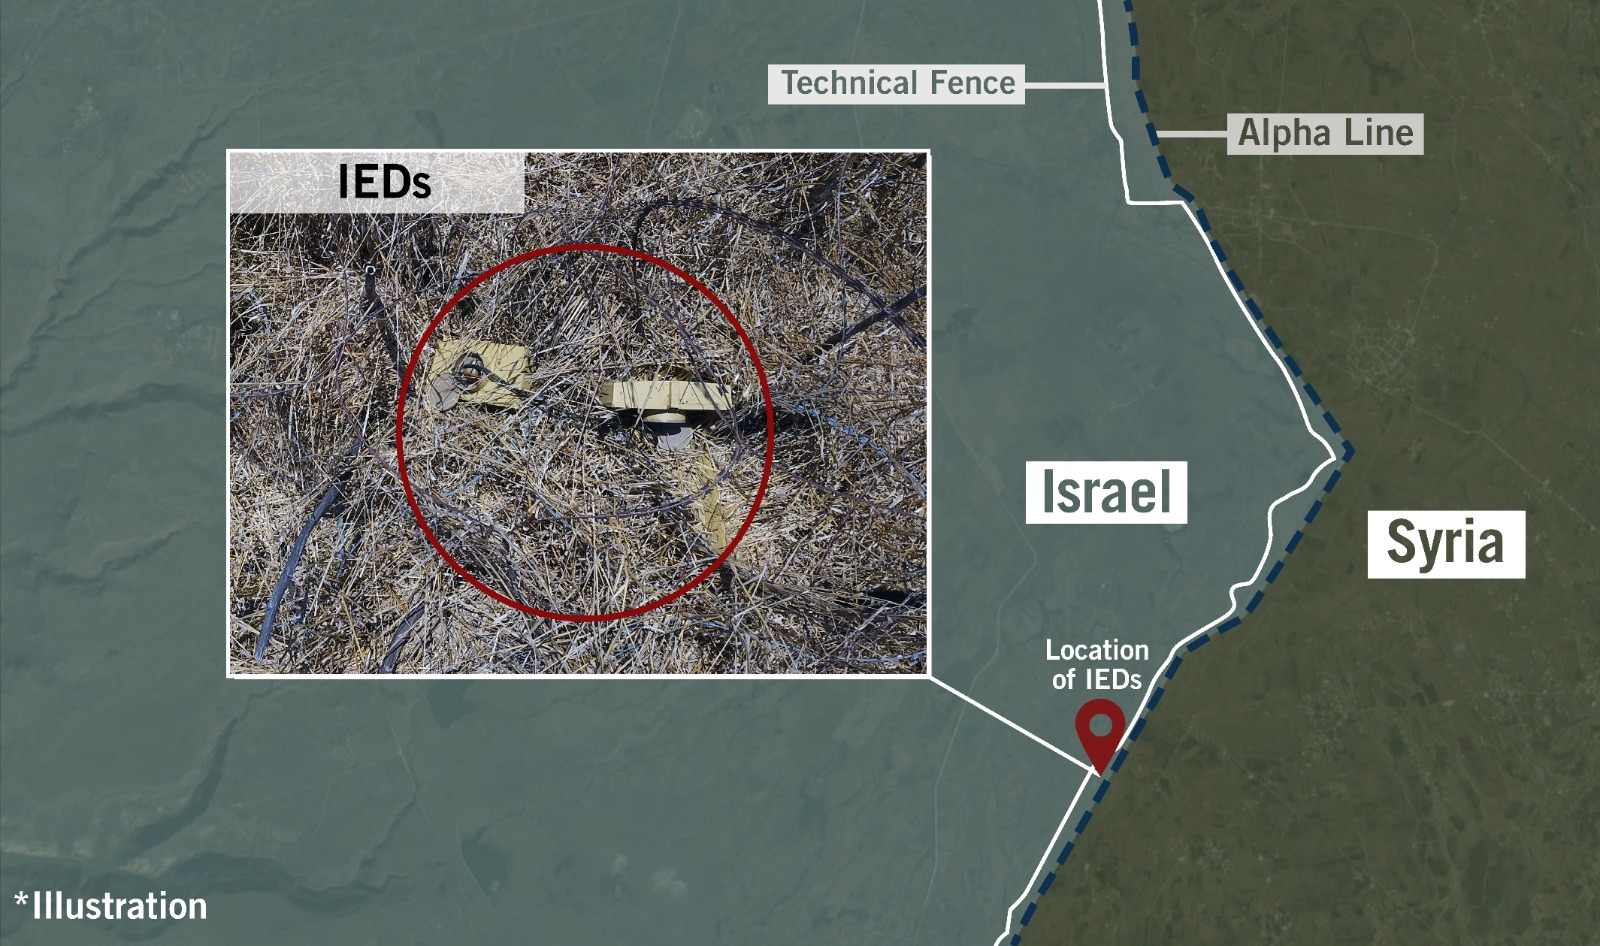 A map depicting the location of IEDs uncovered by the IDF along the border with Syria in the Golan Heights. Credit IDF Spokesperson's Unit